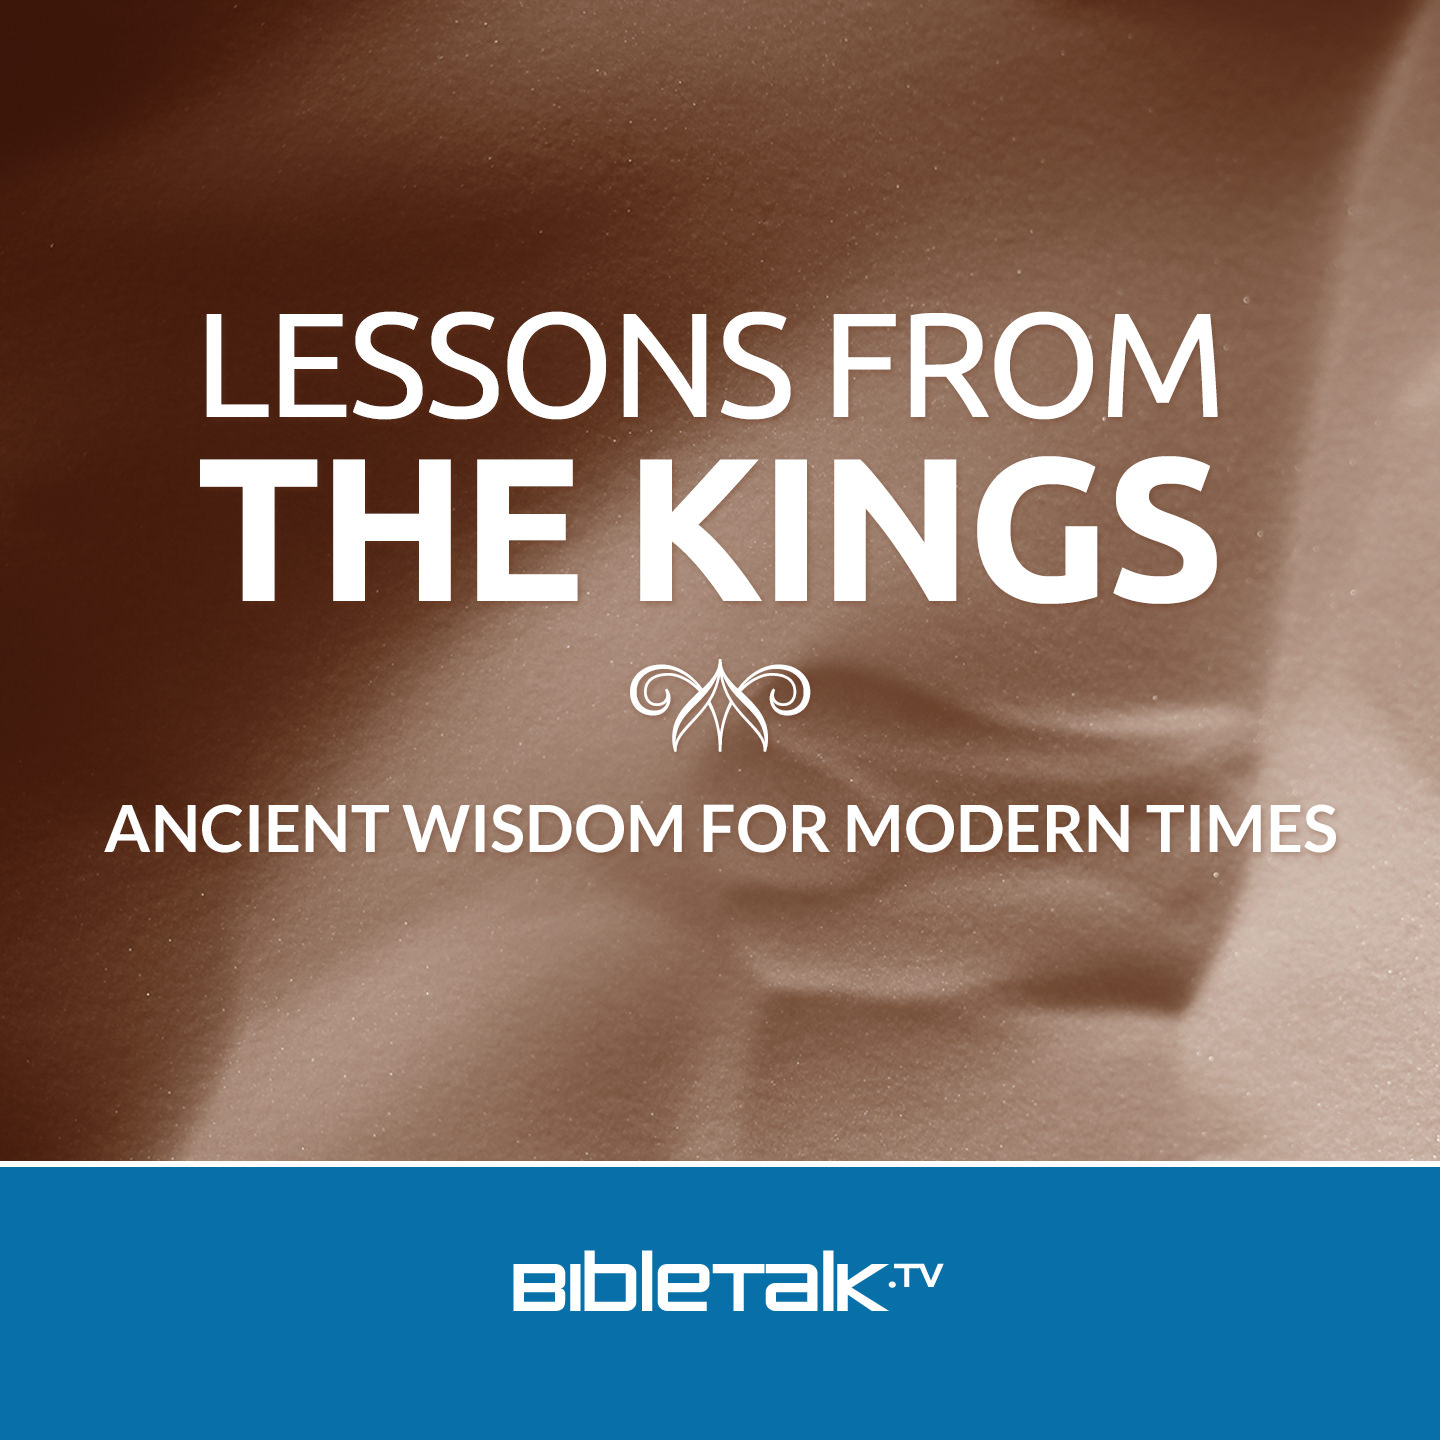 <![CDATA[Lessons from the Kings | BibleTalk.tv]]>